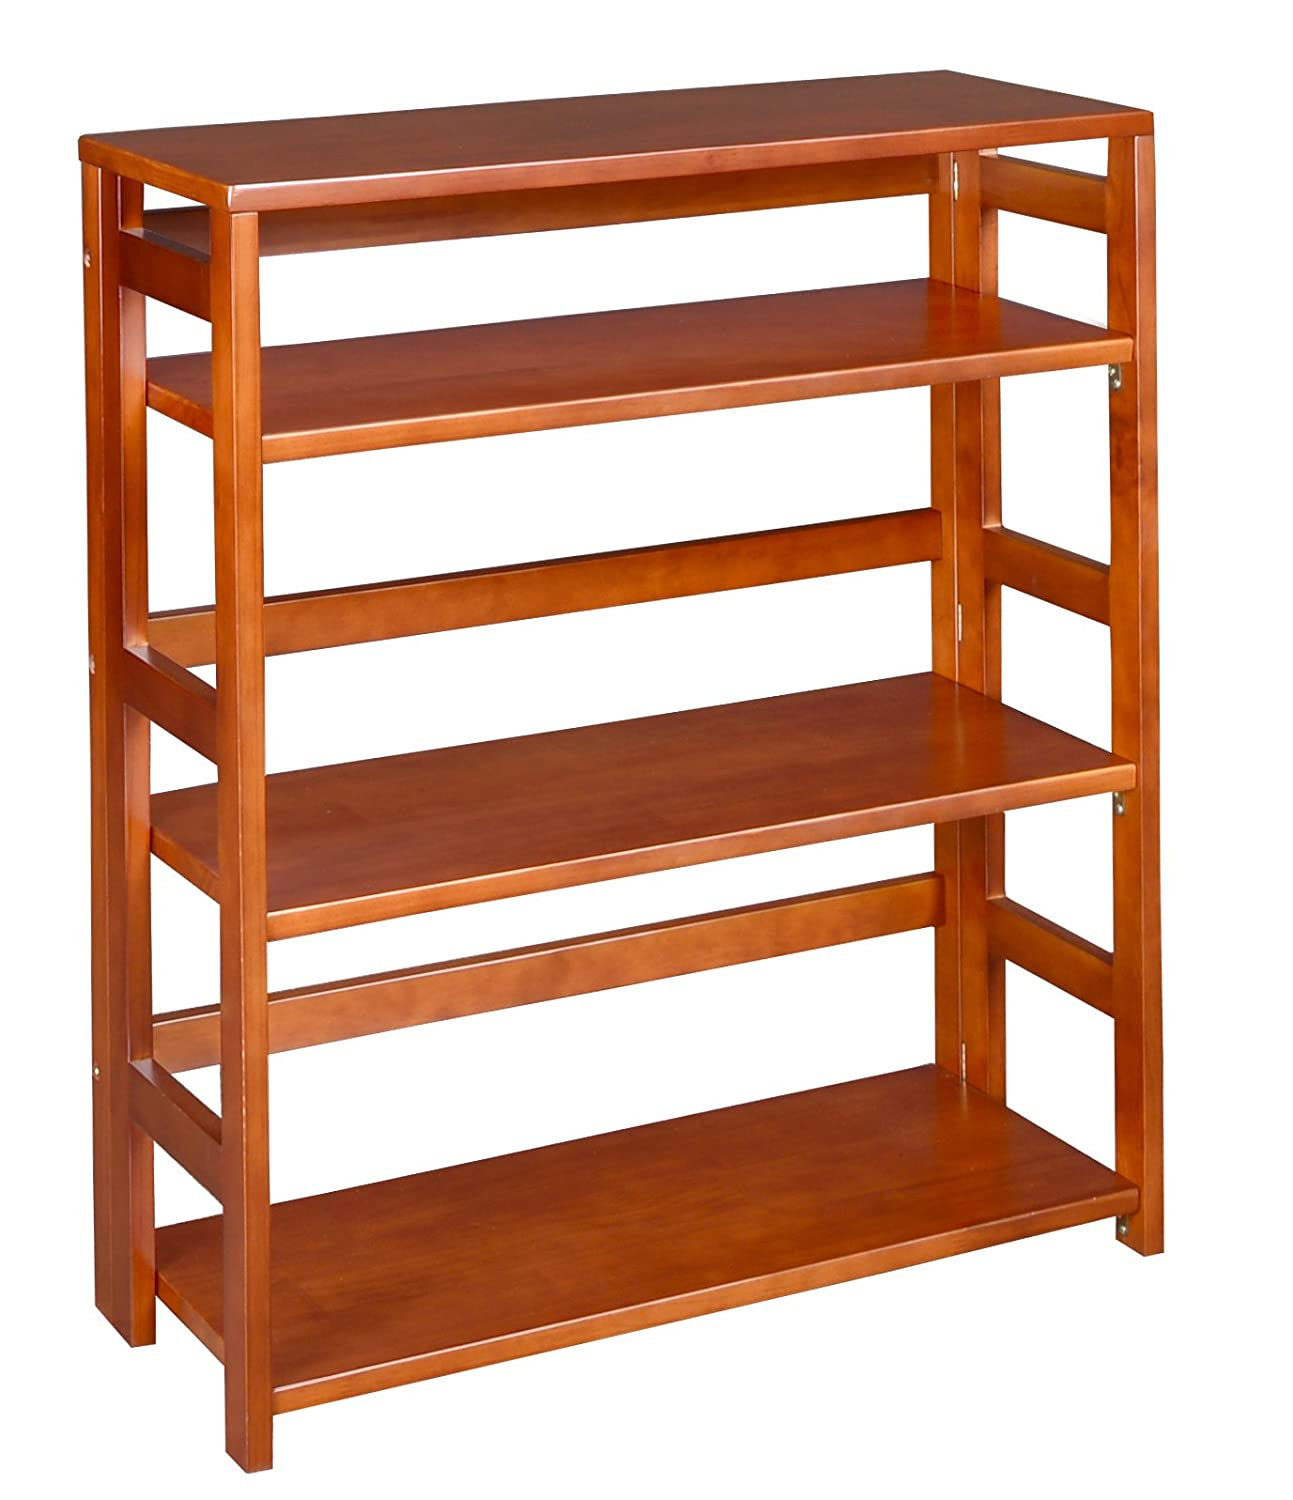 lw occasional bookcases bookcase furniture showroom ron furnishers light wide large campion wellington lwb